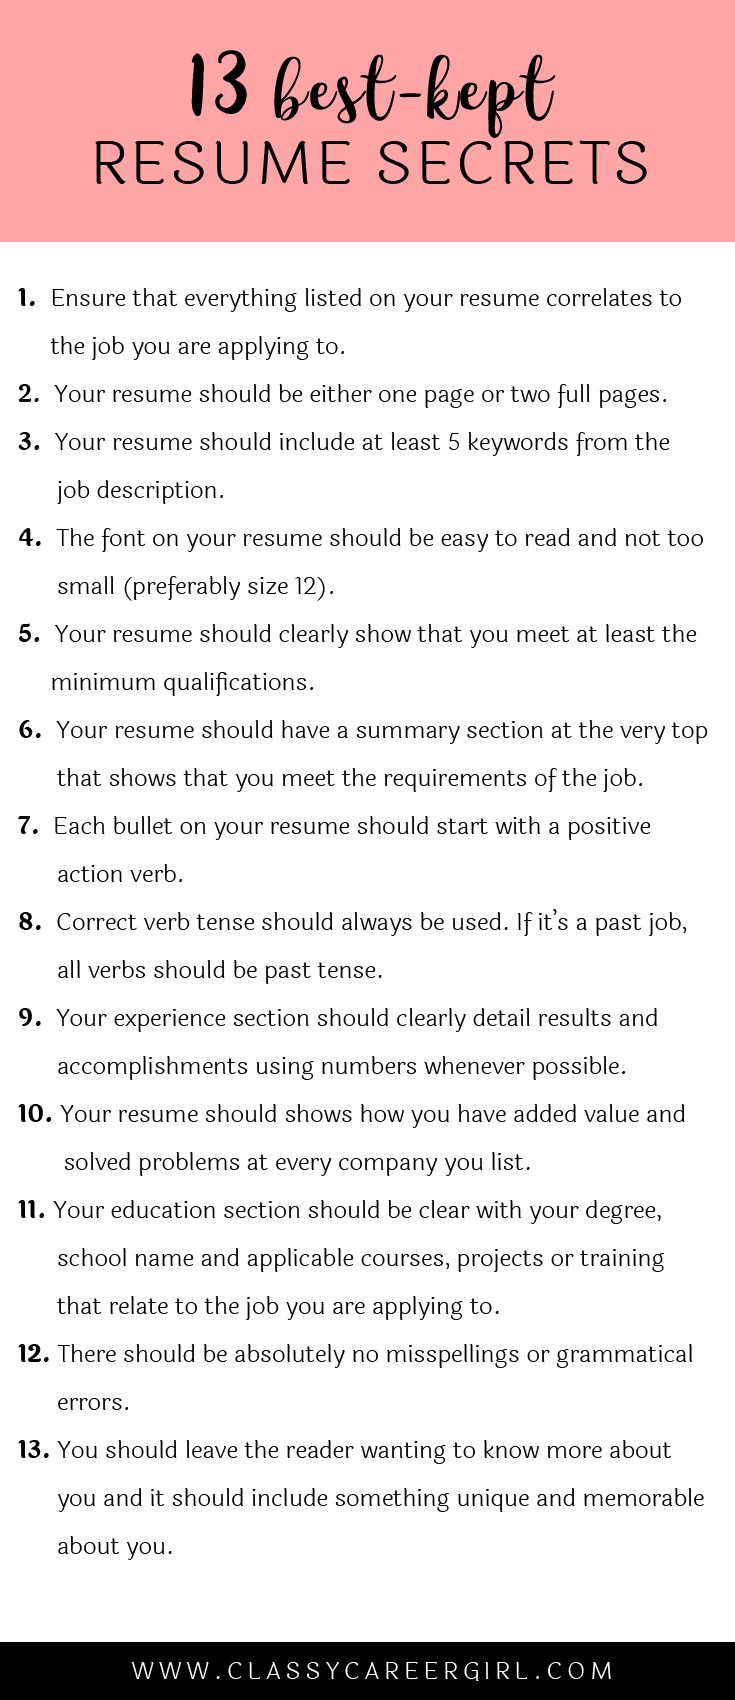 Opposenewapstandardsus  Mesmerizing  Ideas About Resume On Pinterest  Cv Format Resume Cv And  With Inspiring Some Hiring Managers Will Toss Your Resume Out If You Dont Know These  With Alluring Make A Free Resume Online Also Writer Resume In Addition Unique Resume And Skills For Customer Service Resume As Well As Tech Support Resume Additionally Salesman Resume From Pinterestcom With Opposenewapstandardsus  Inspiring  Ideas About Resume On Pinterest  Cv Format Resume Cv And  With Alluring Some Hiring Managers Will Toss Your Resume Out If You Dont Know These  And Mesmerizing Make A Free Resume Online Also Writer Resume In Addition Unique Resume From Pinterestcom